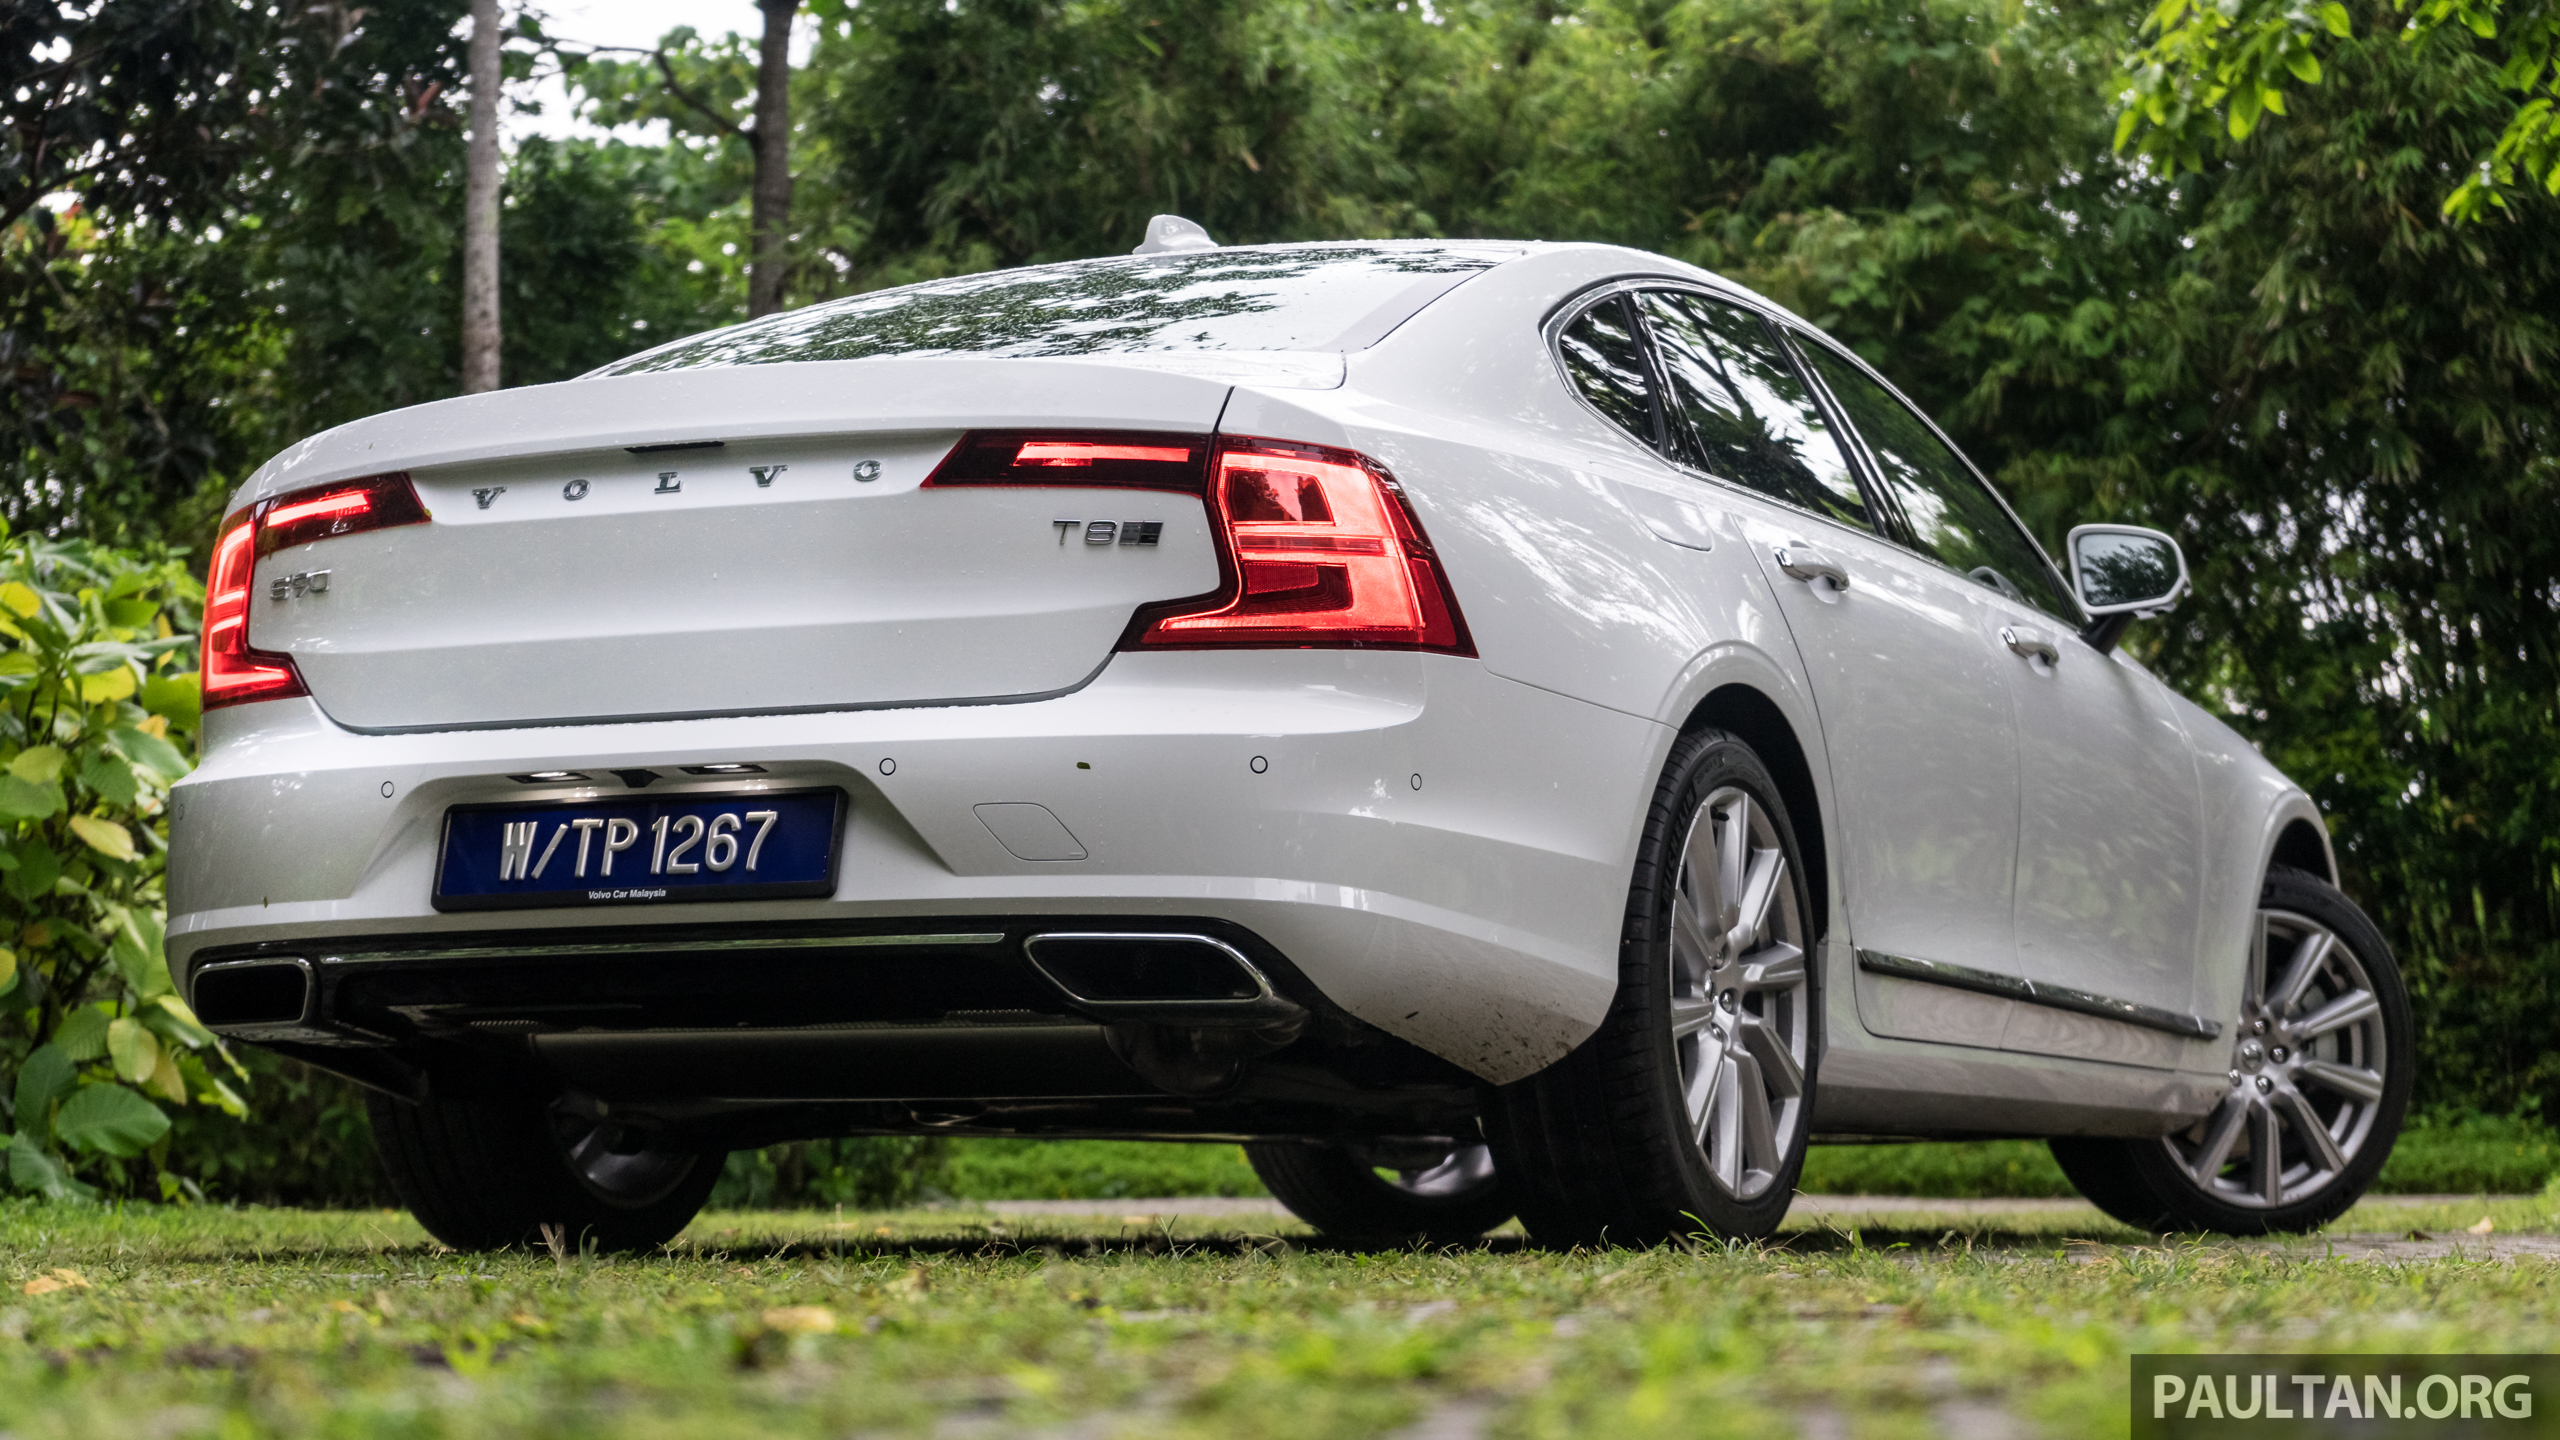 Volvo Xc90 Hybrid >> Volvo Car Malaysia to export CKD S90 T8 to ASEAN markets - only plug-in hybrid plant outside Sweden